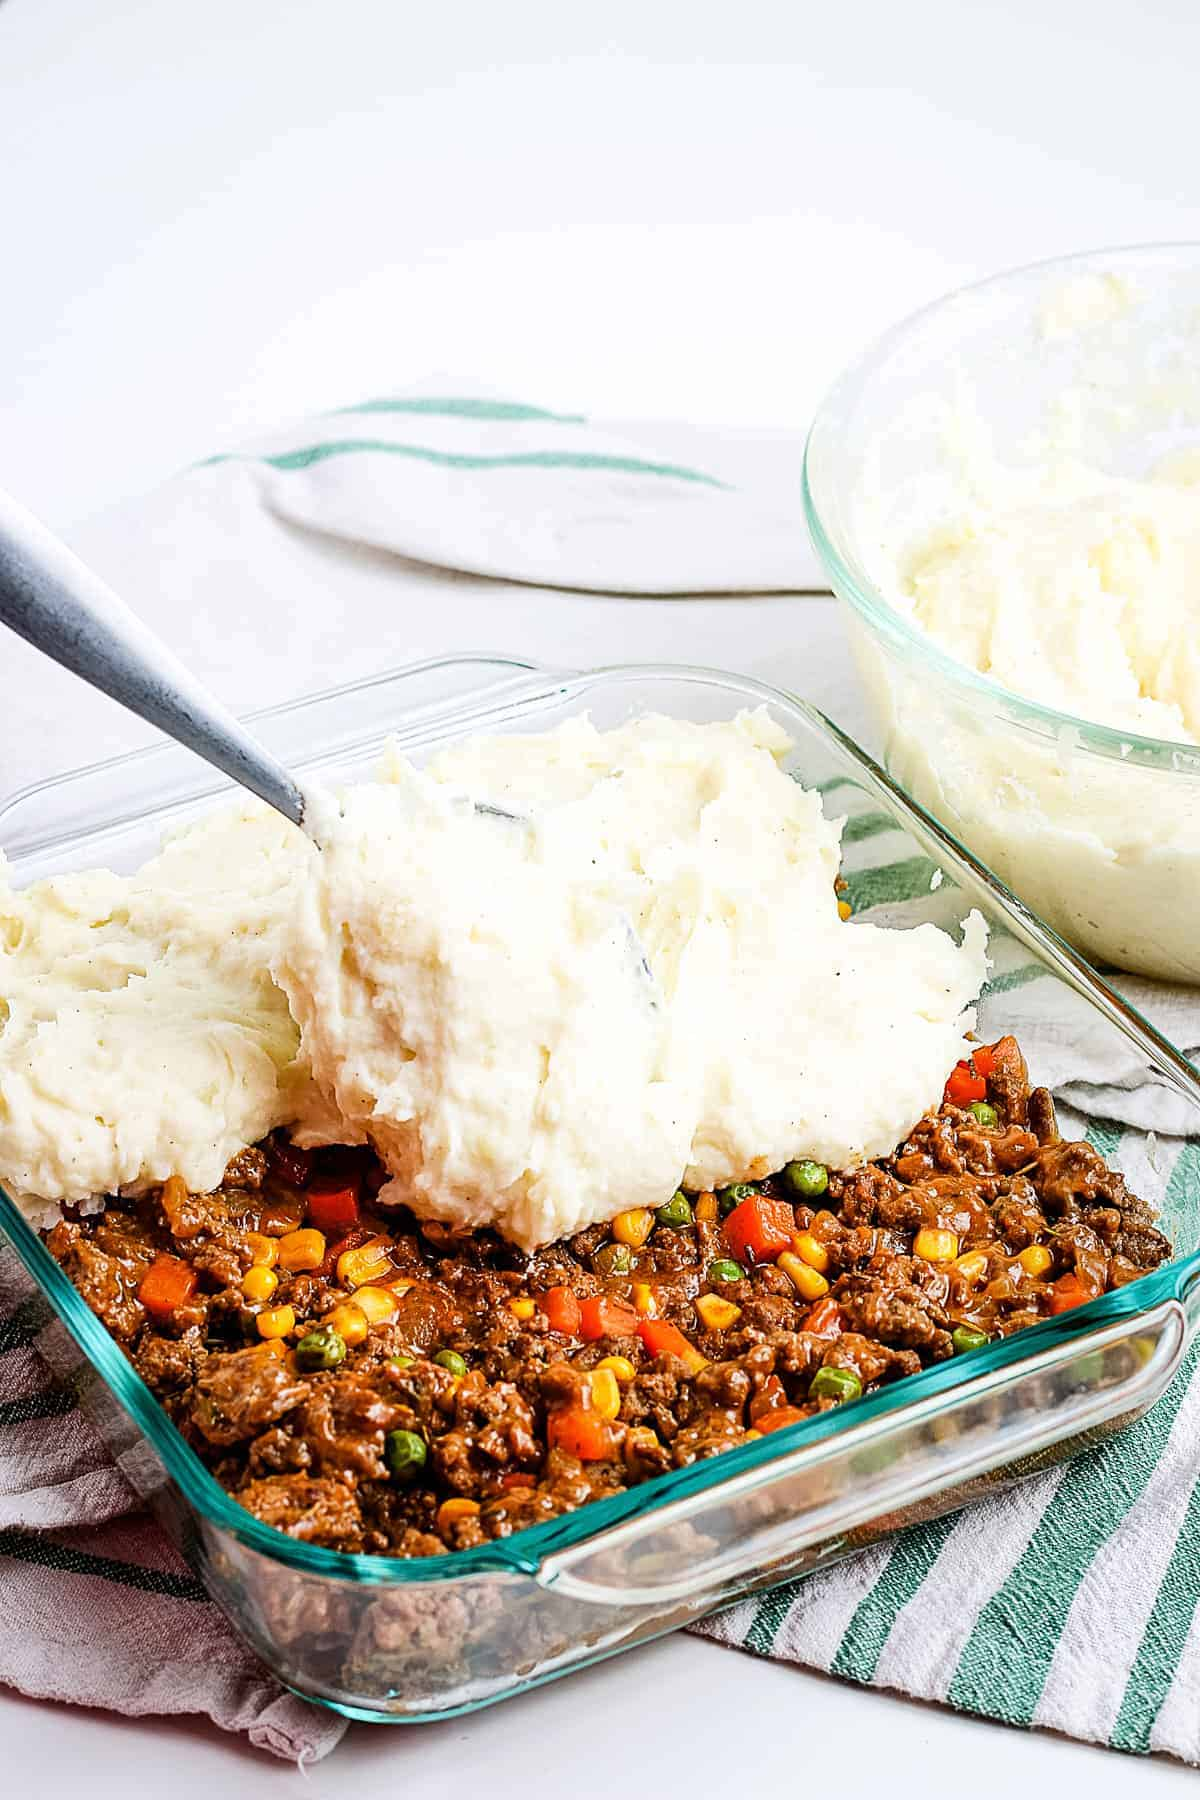 Spreading mashed potatoes on ground beef mixture in glass baking dish